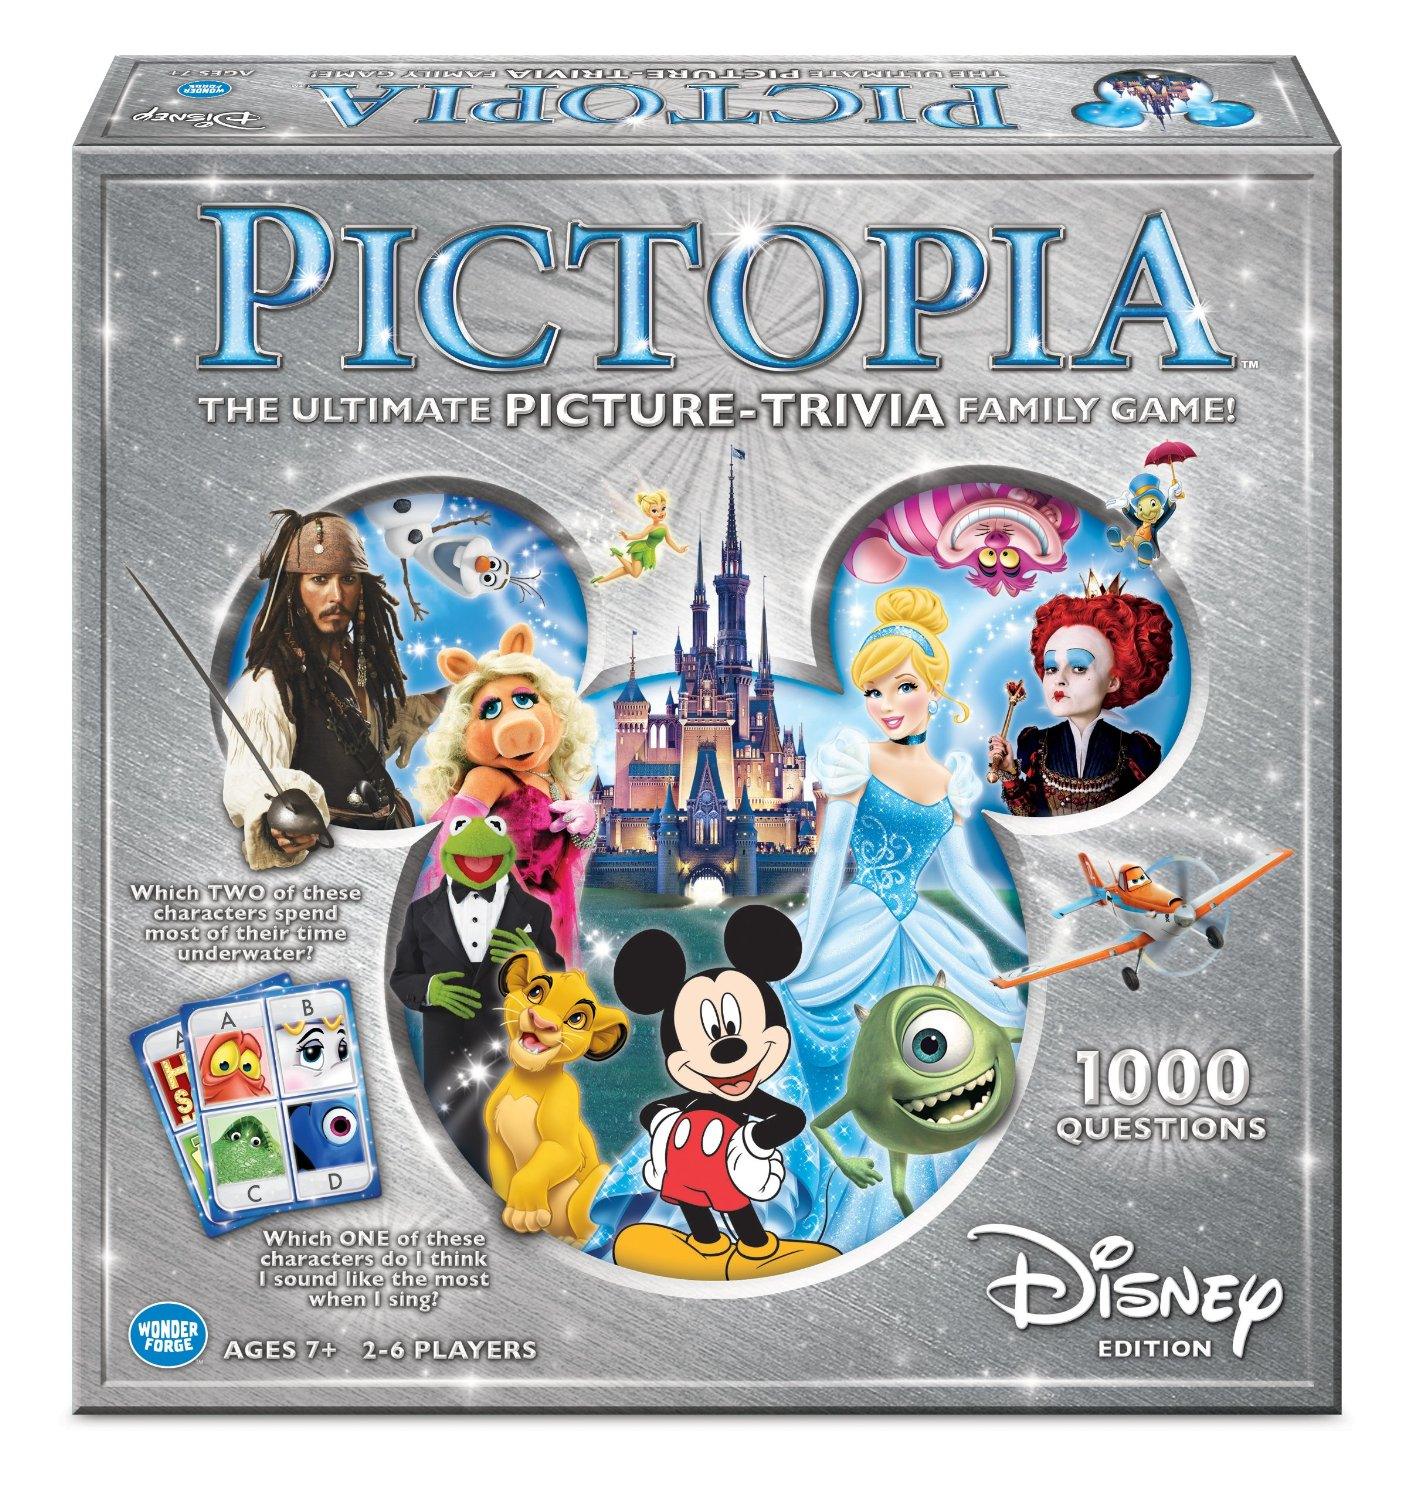 Gifts Under $20-Pictopia-Family Trivia Game: Disney Edition